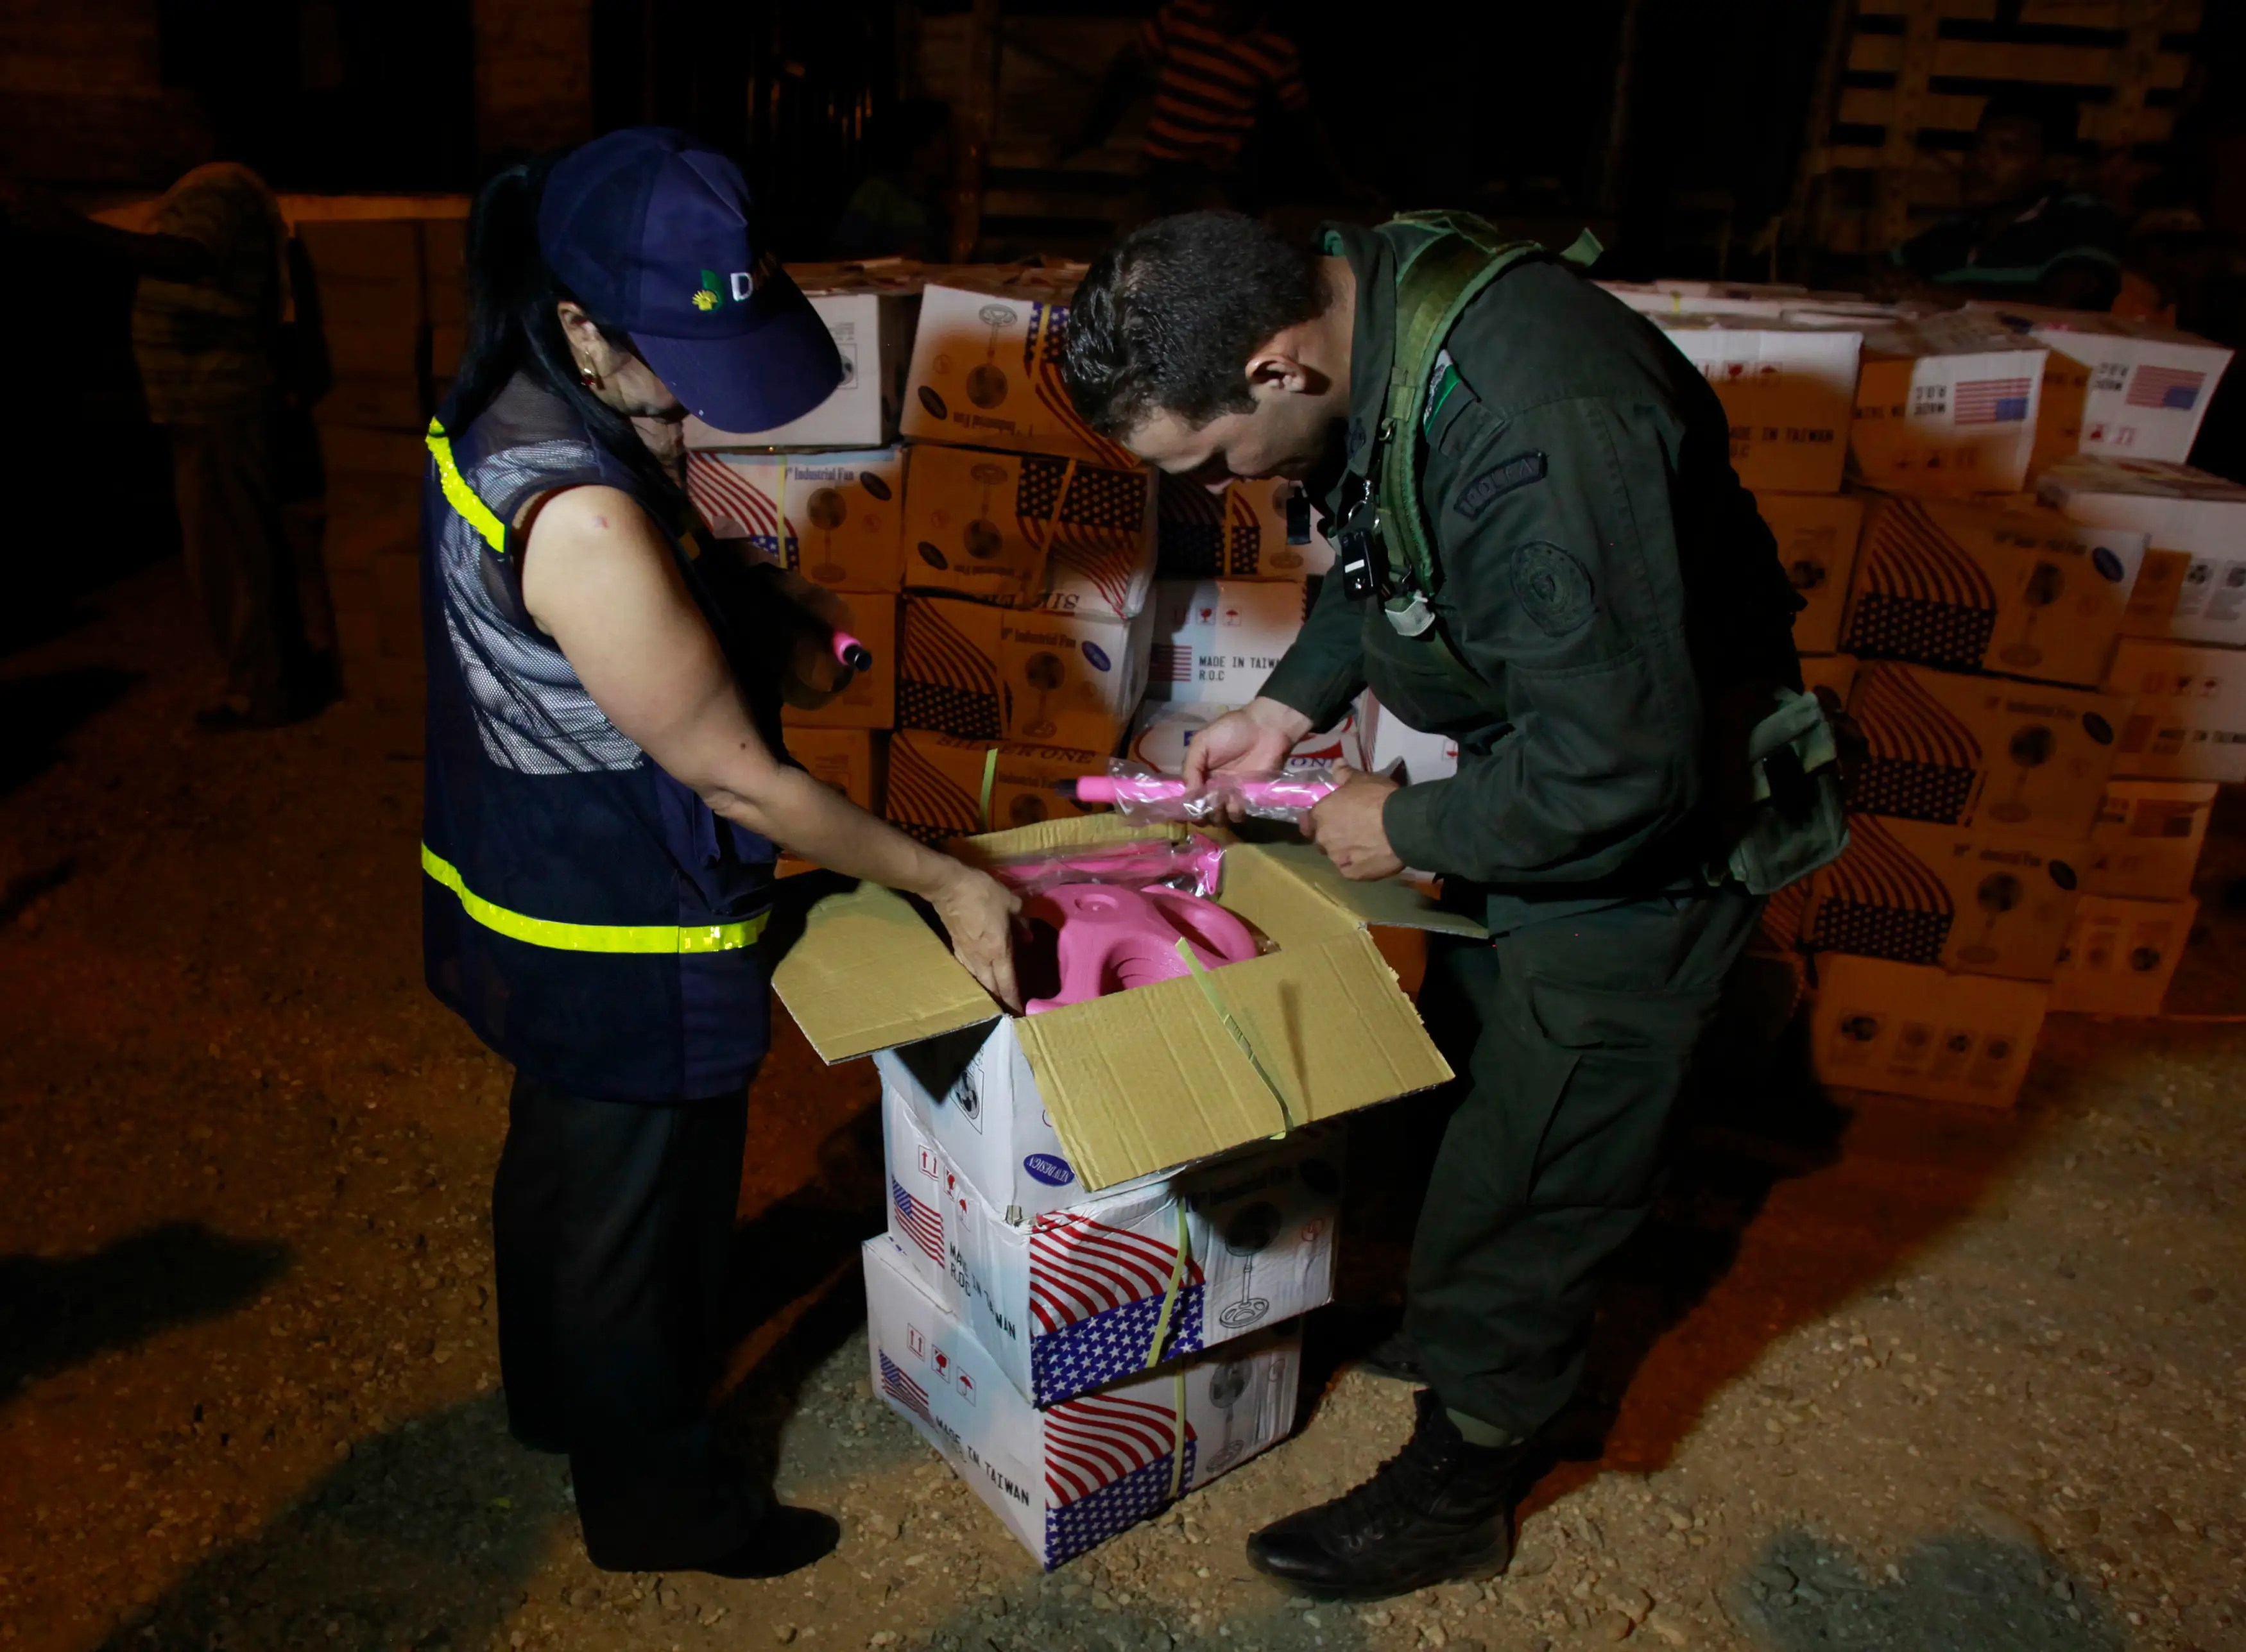 Colombia smuggling contraband port inspection